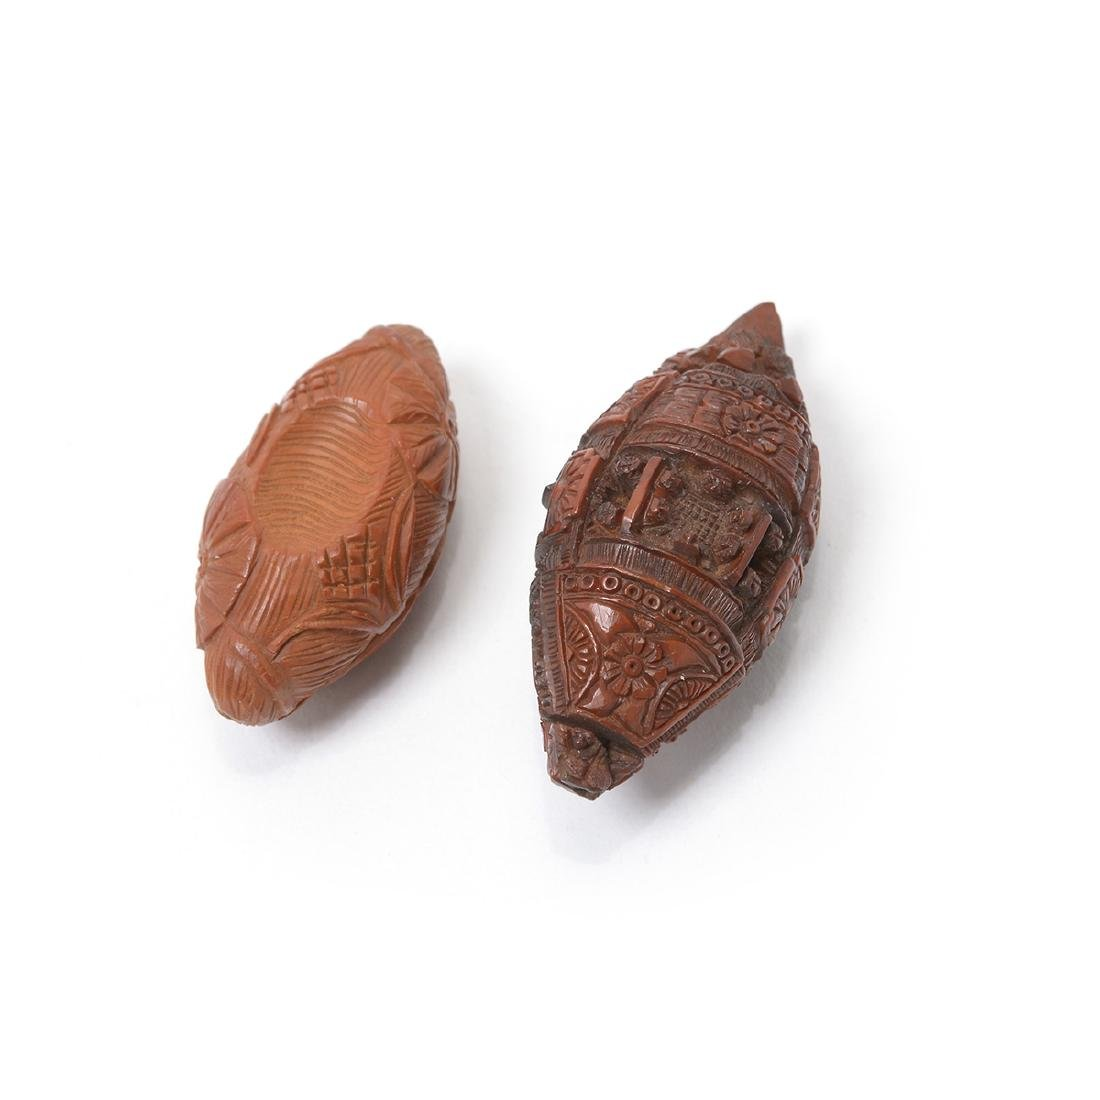 Two Carved Olive Seeds